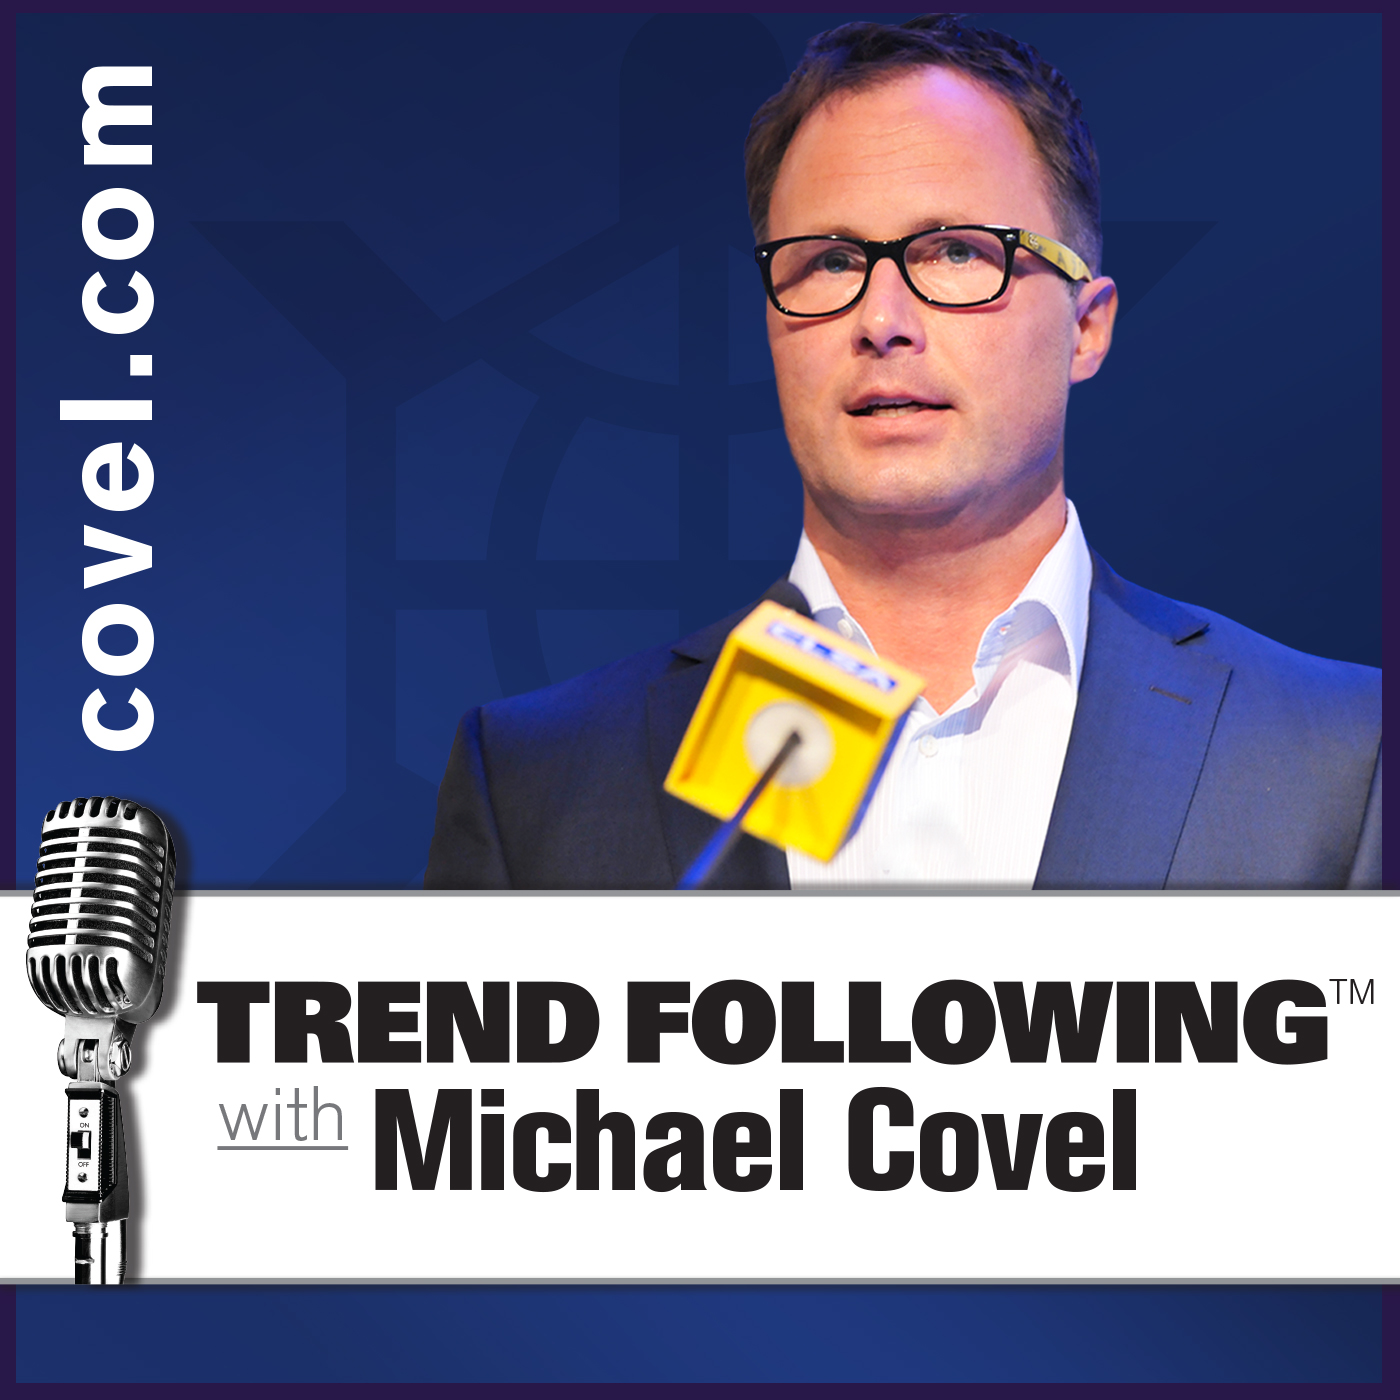 Ep. 531: Mark Rzepczynski Interview #2 with Michael Covel on Trend Following Radio